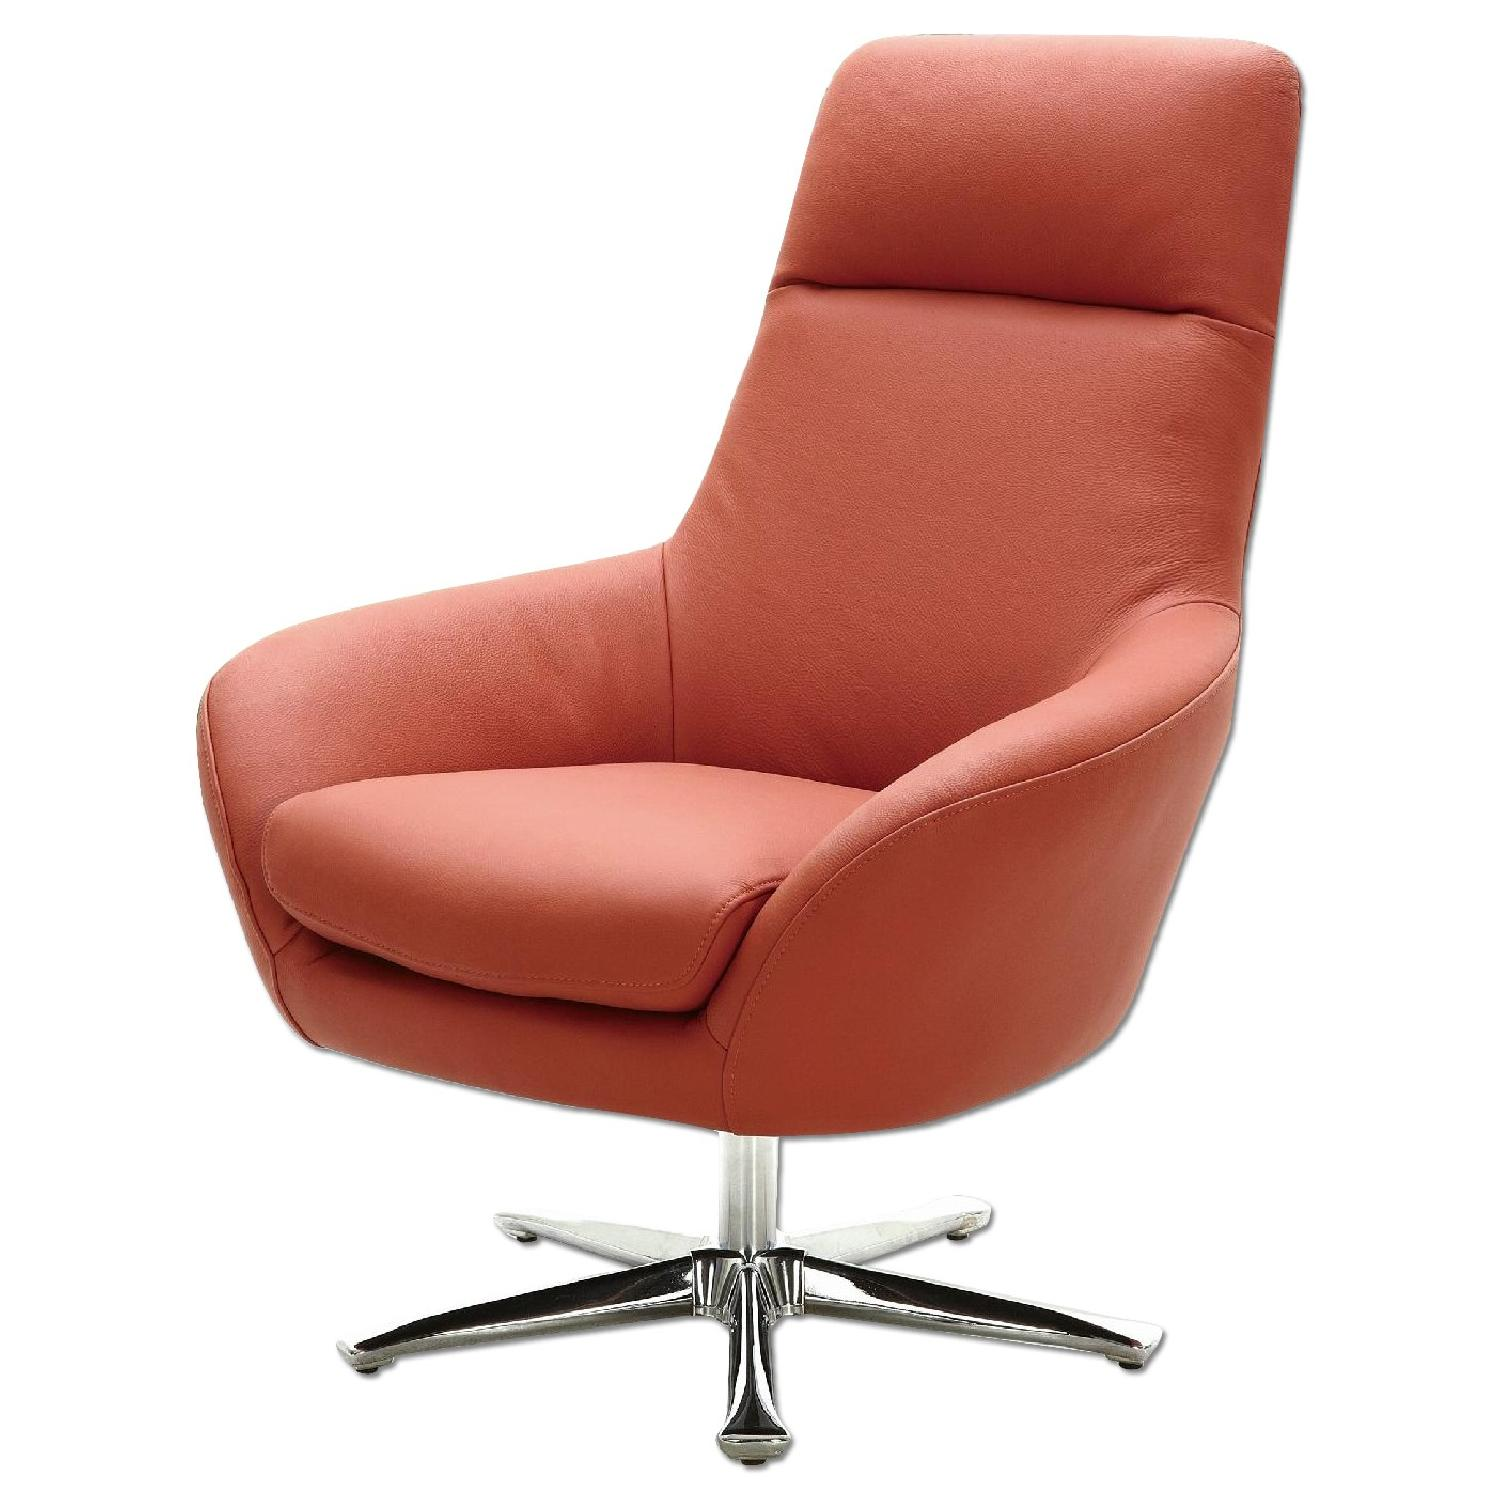 Accent Seating Orange Accent Chair With Contemporary: Modern Style Swivel Accent Chair In Orange Premium Full